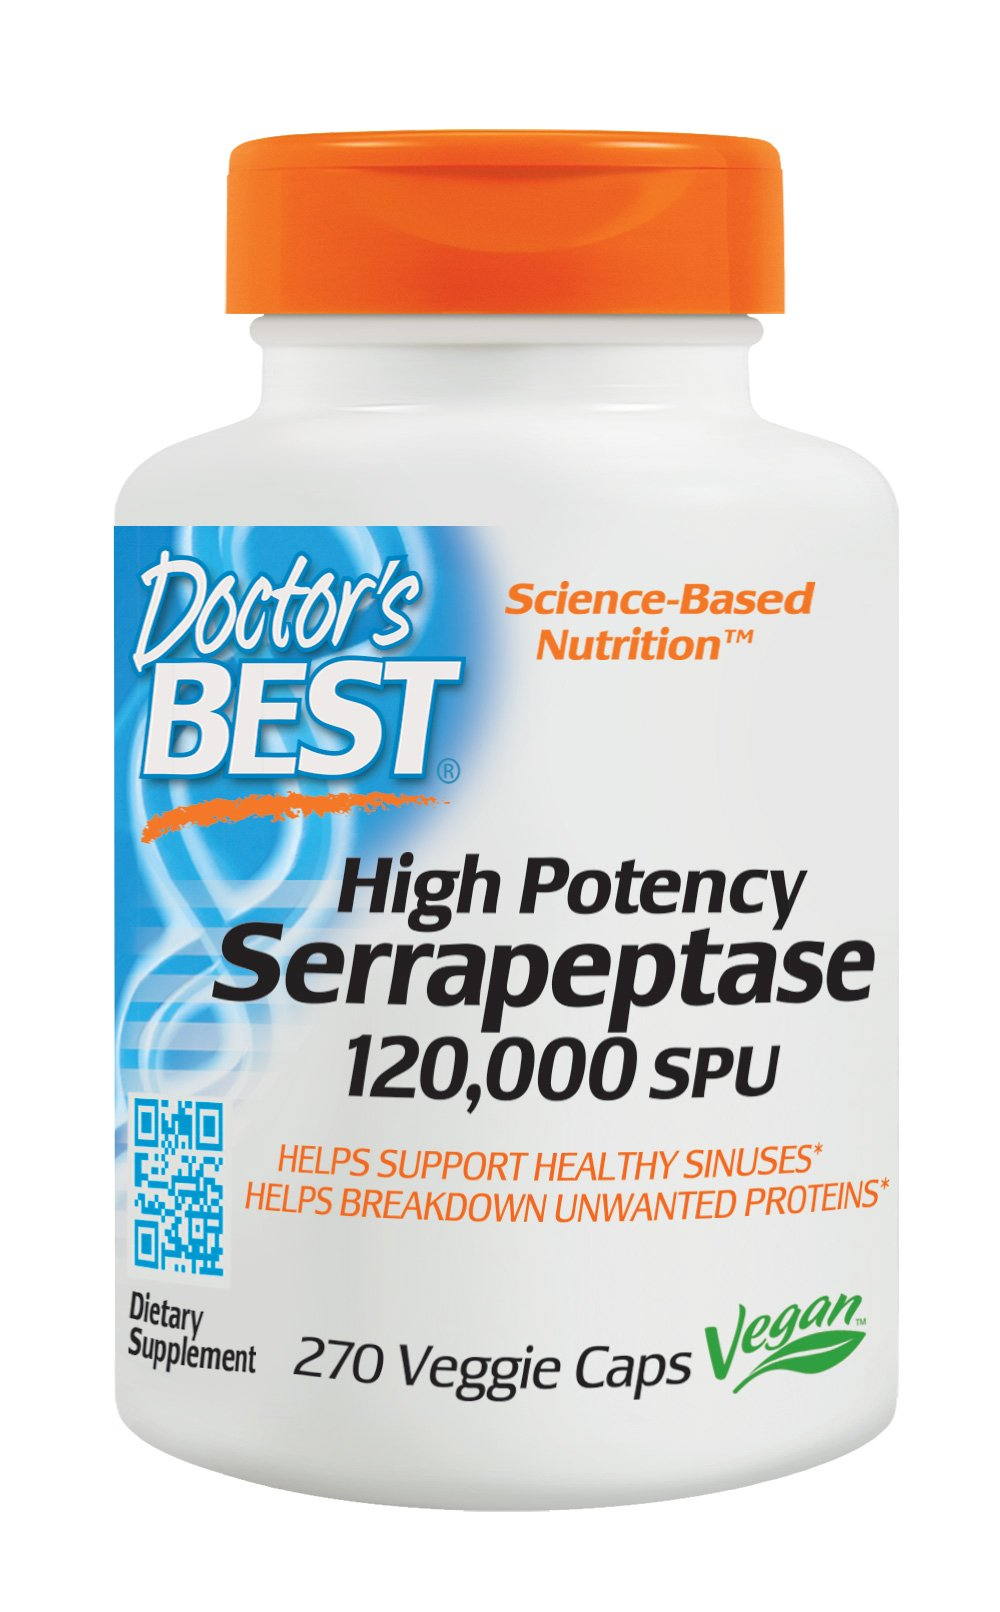 Doctor's Best High Potency Serrapeptase, Non-GMO, Gluten Free, Vegan, Supports Healthy Sinuses, 120,000 SPU, 270 Veggie Caps